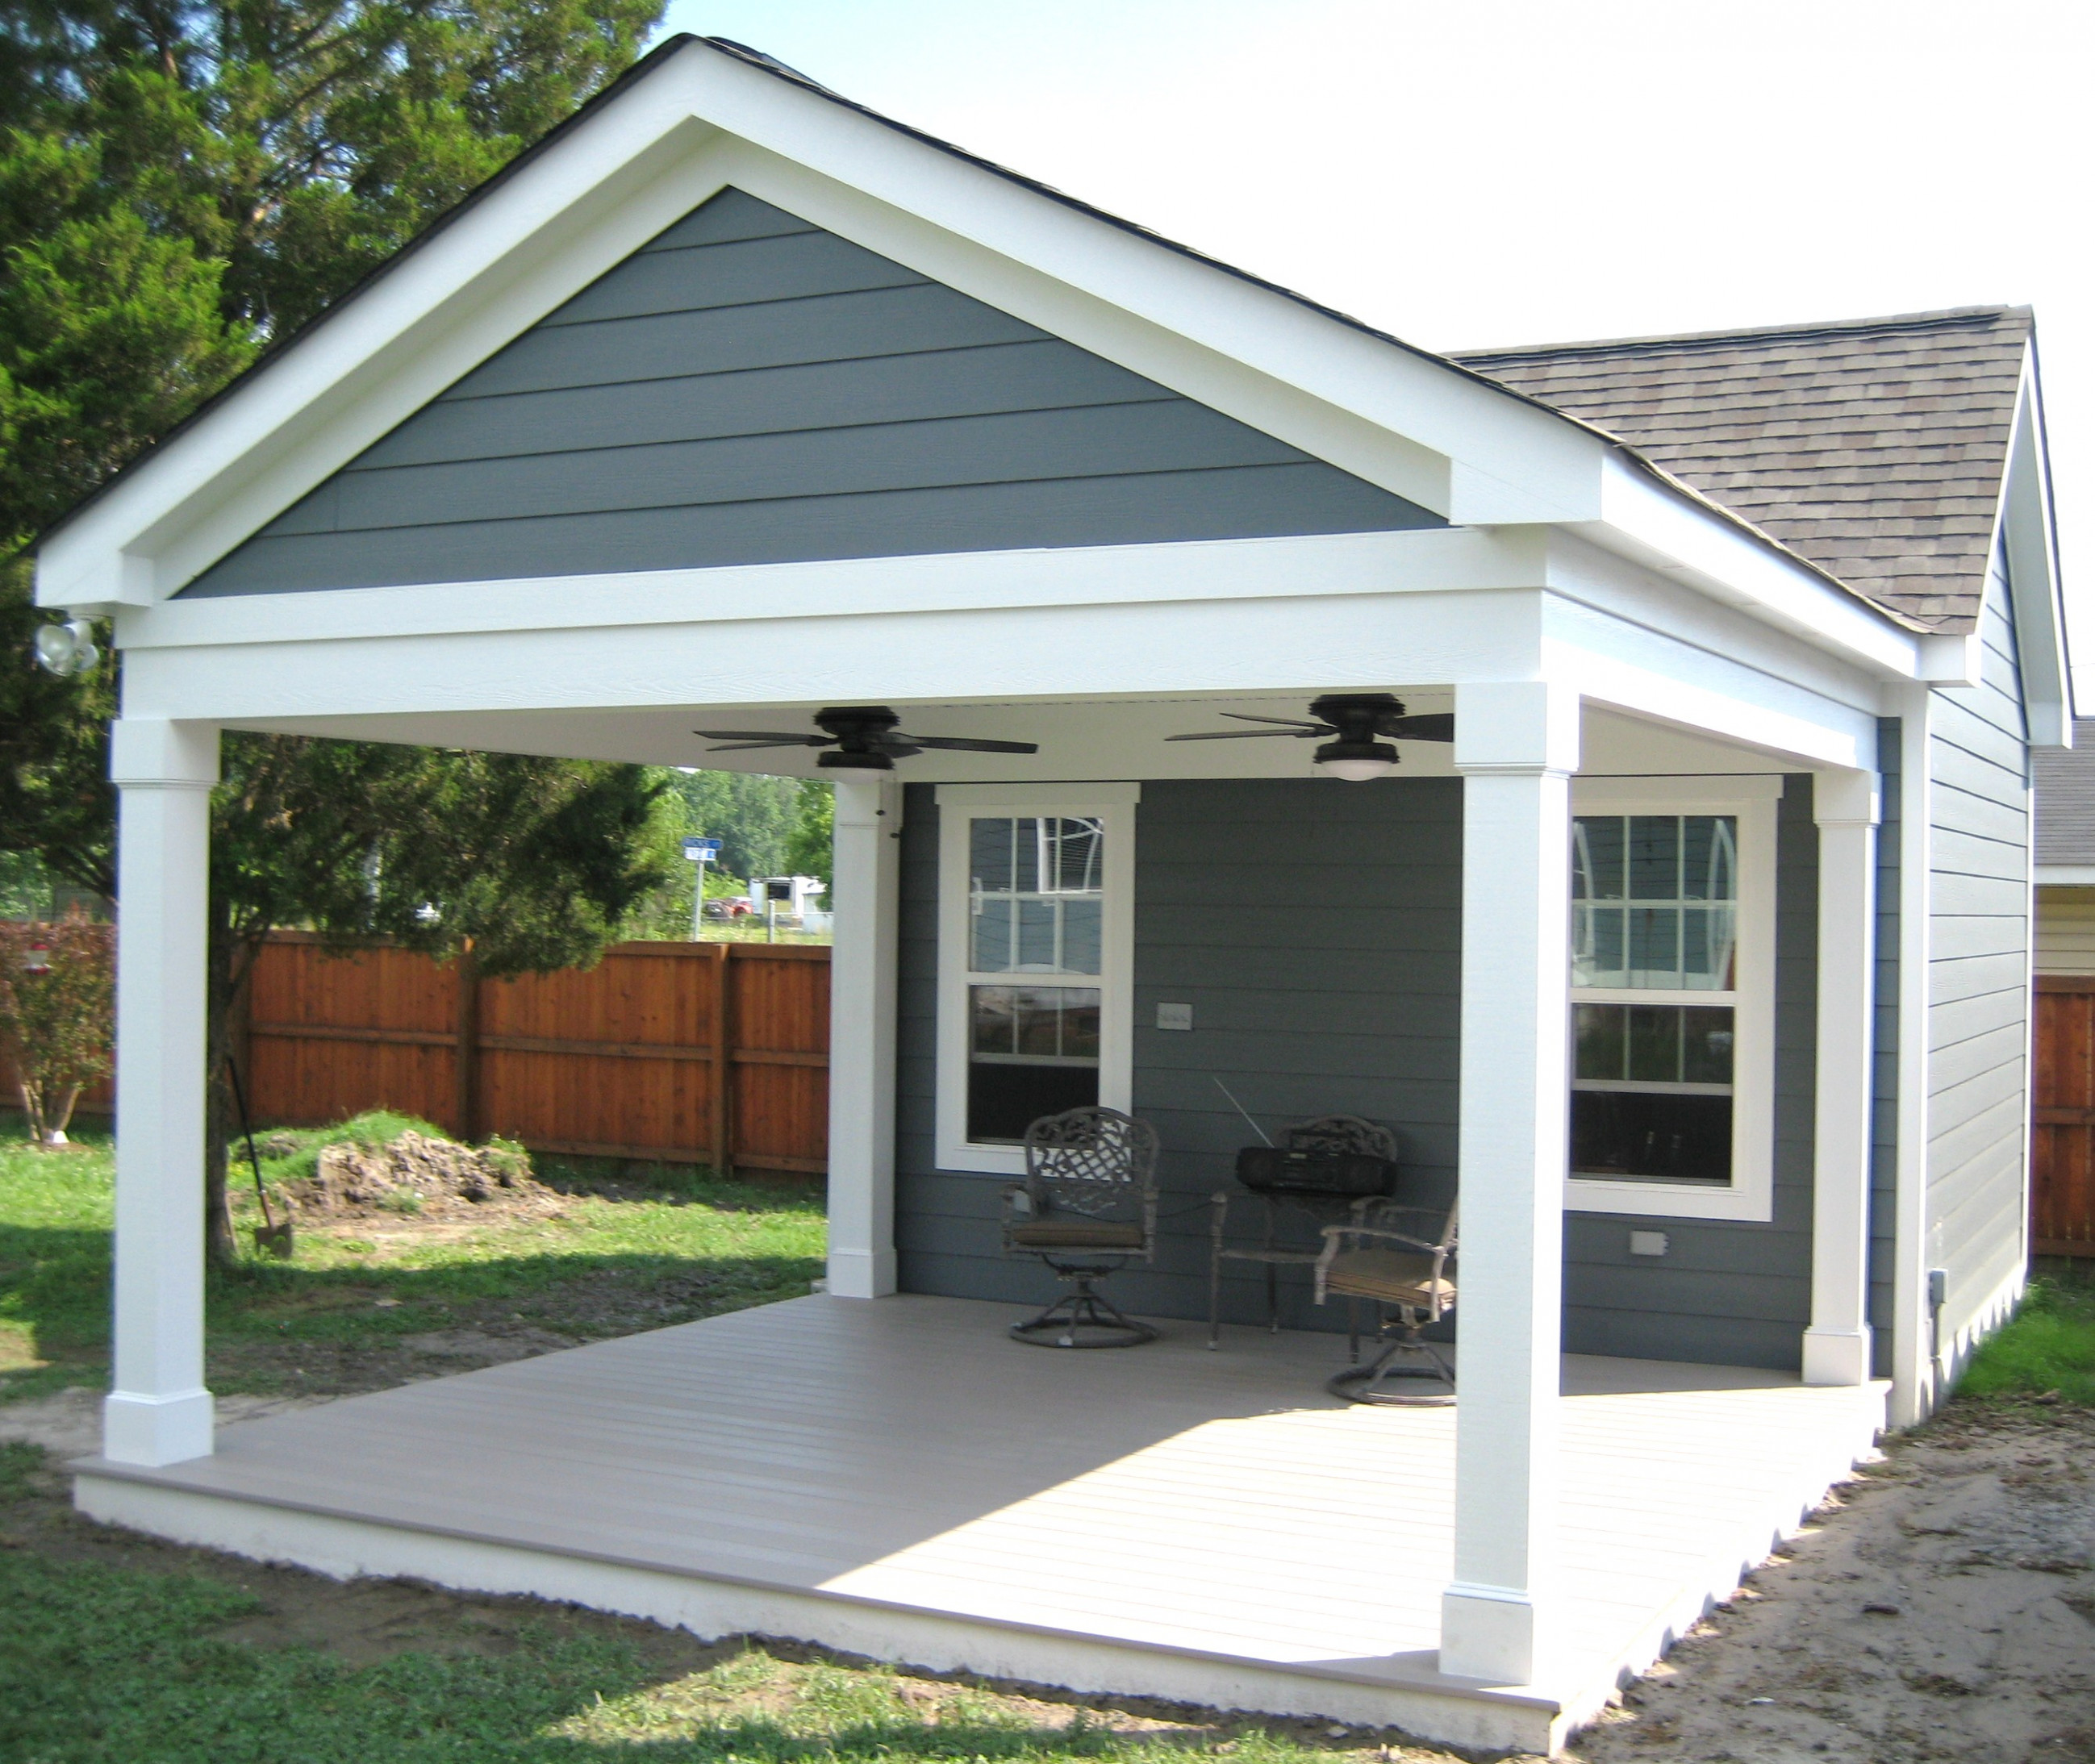 Carports Custom Design Car Garage With Carport Plans ..